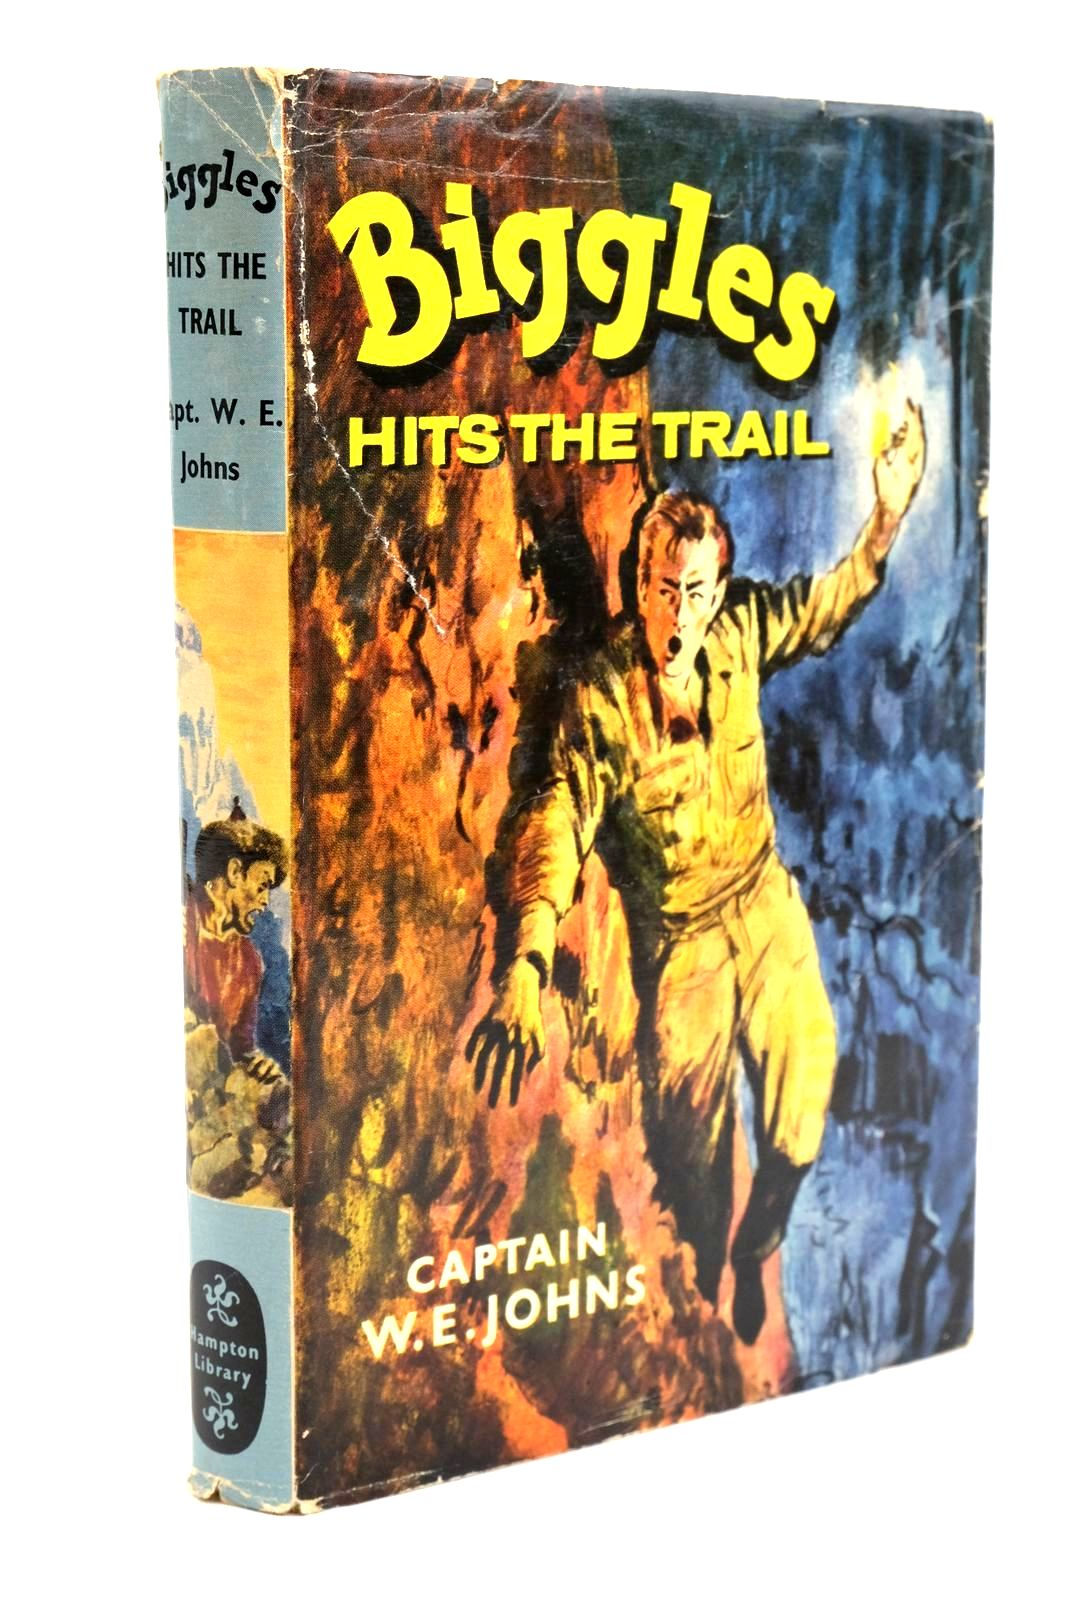 Photo of BIGGLES HITS THE TRAIL written by Johns, W.E. published by Brockhampton Books (STOCK CODE: 1320702)  for sale by Stella & Rose's Books